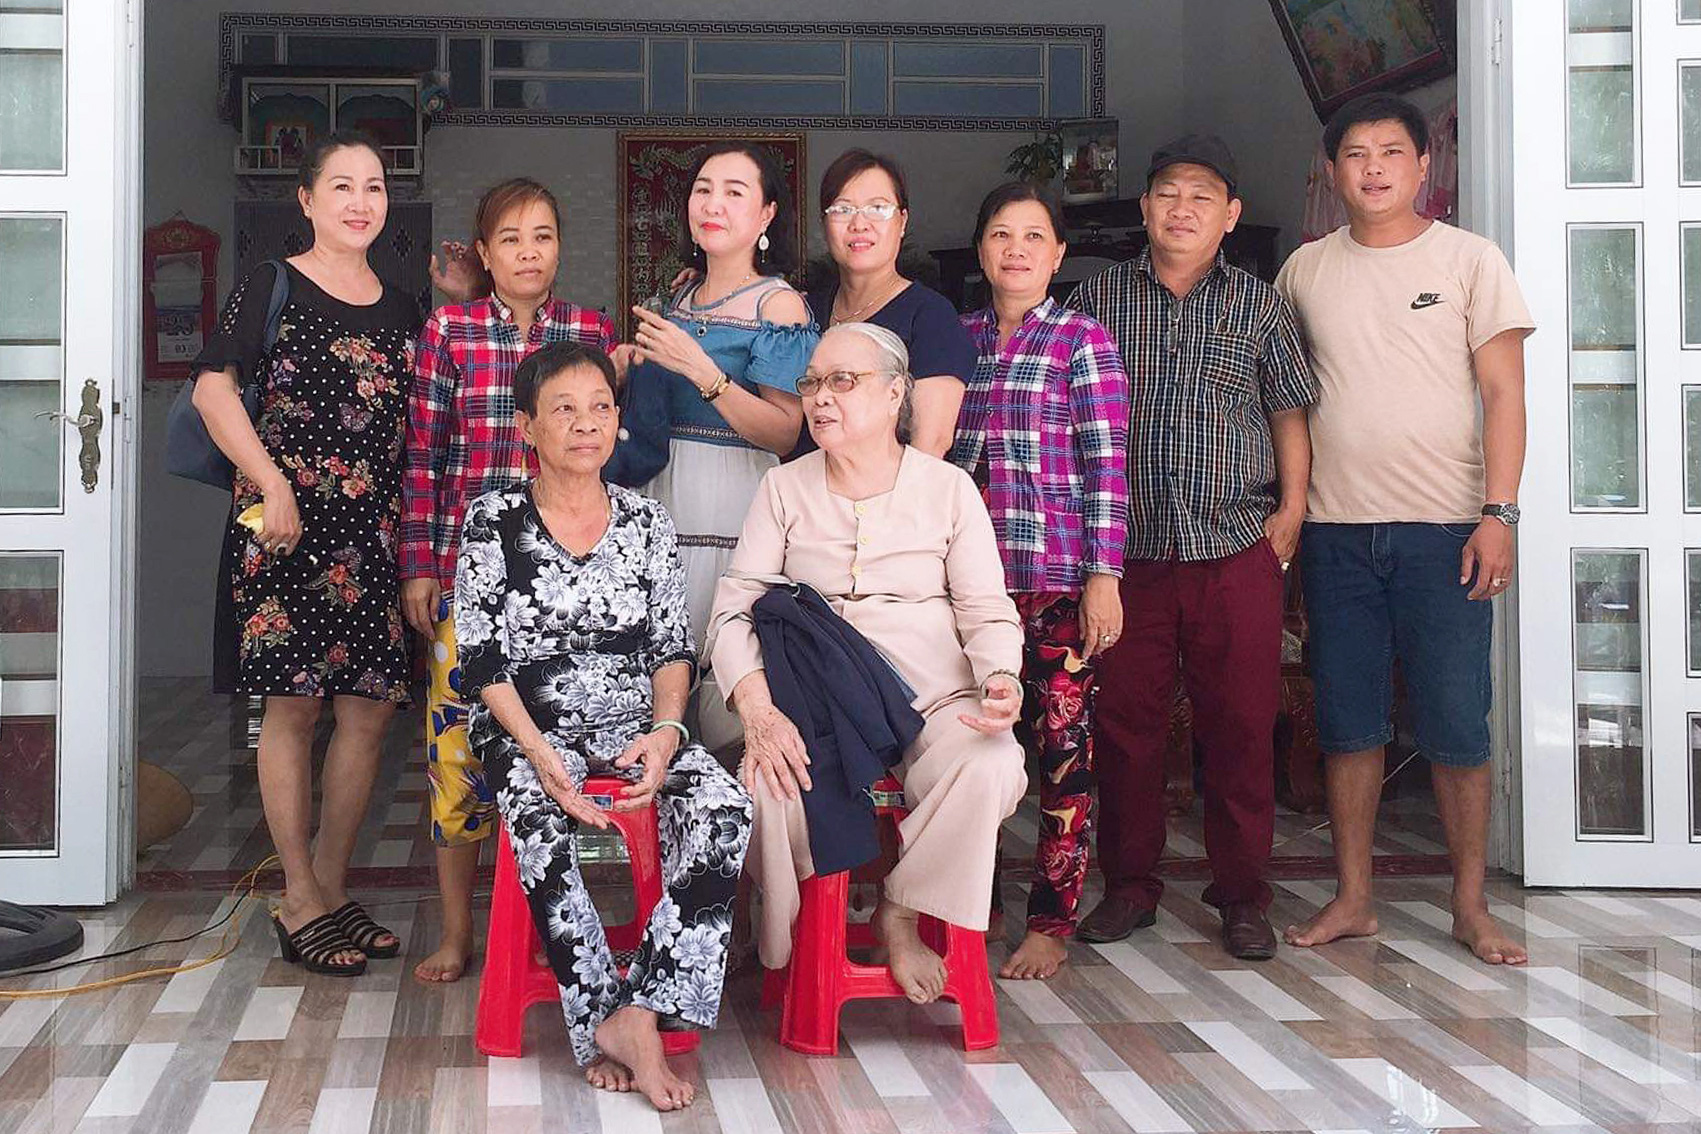 Back from the dead: Vietnamese woman returns home after 50 years